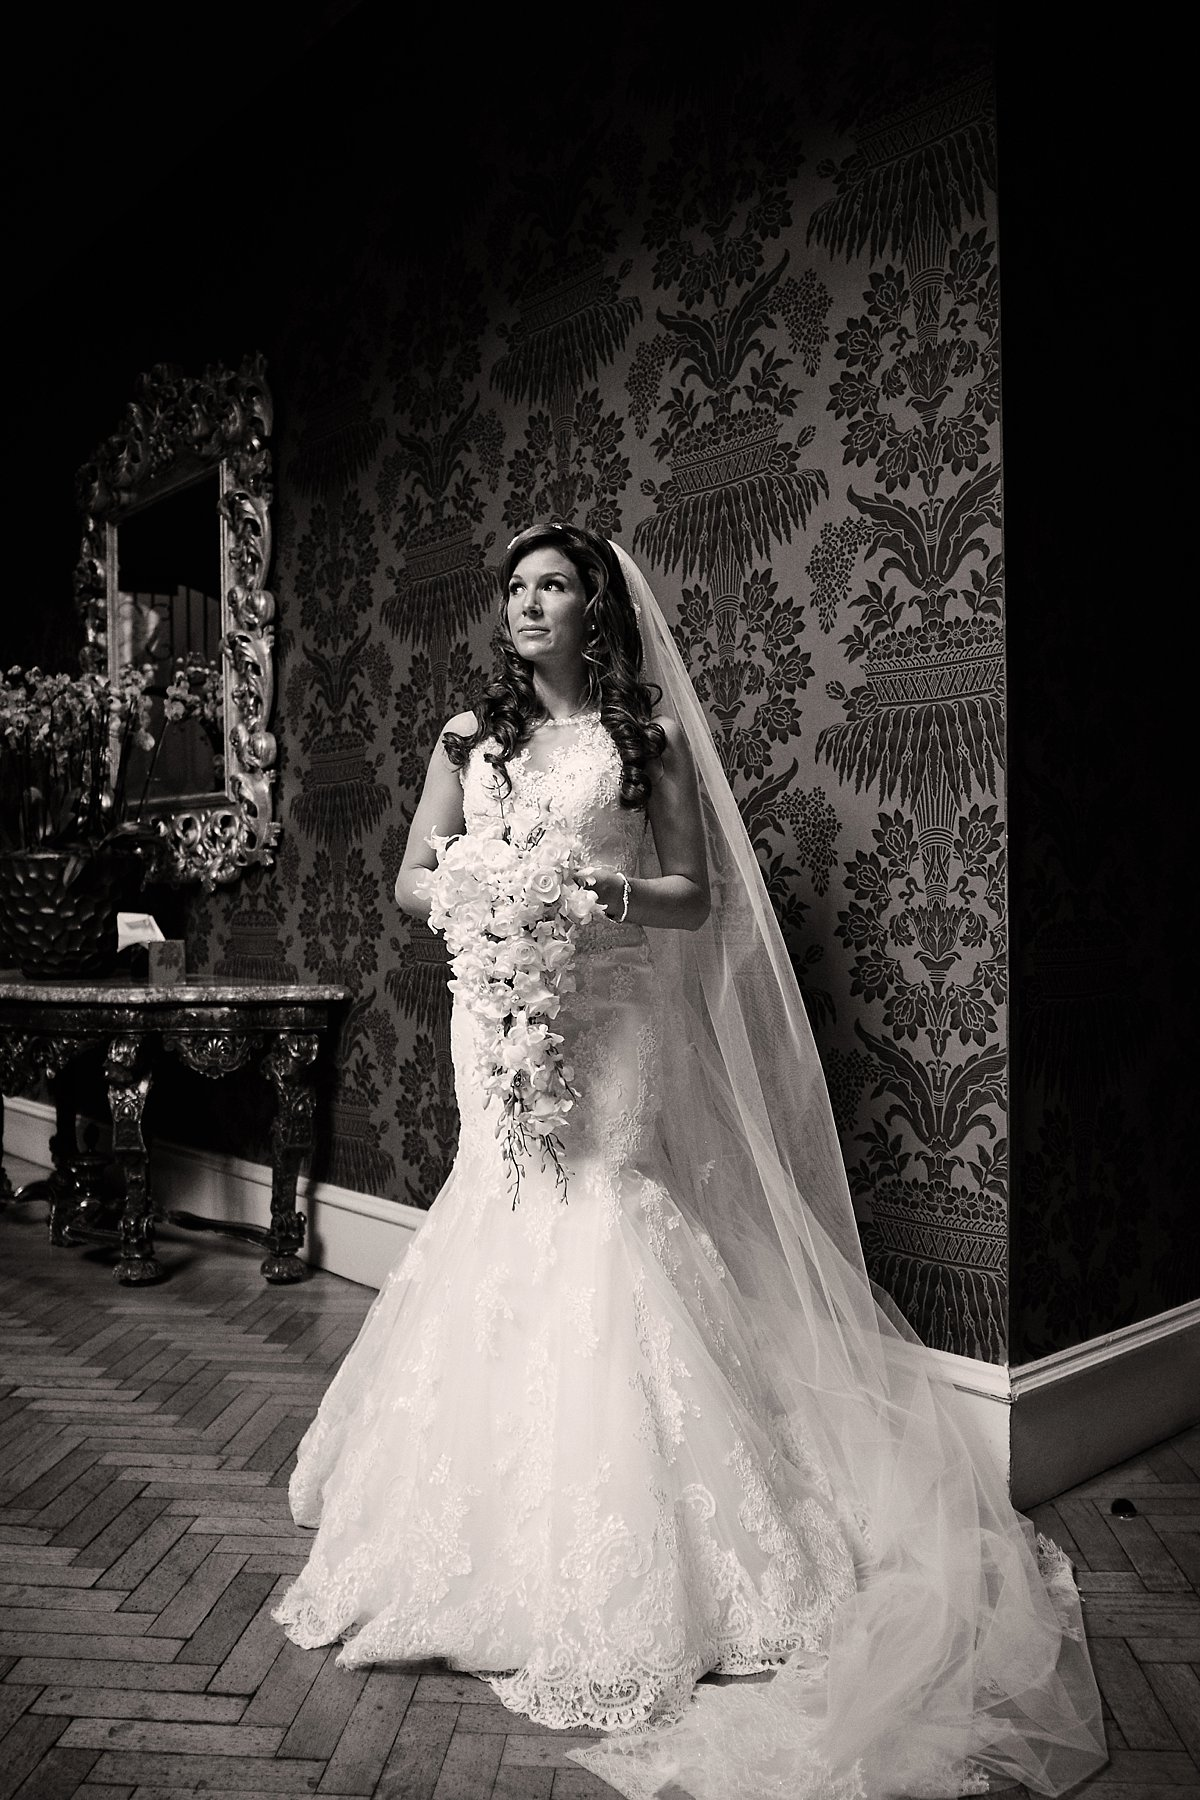 Bride at pennyhill Park Wedding Photographer Jason Leaman Photography